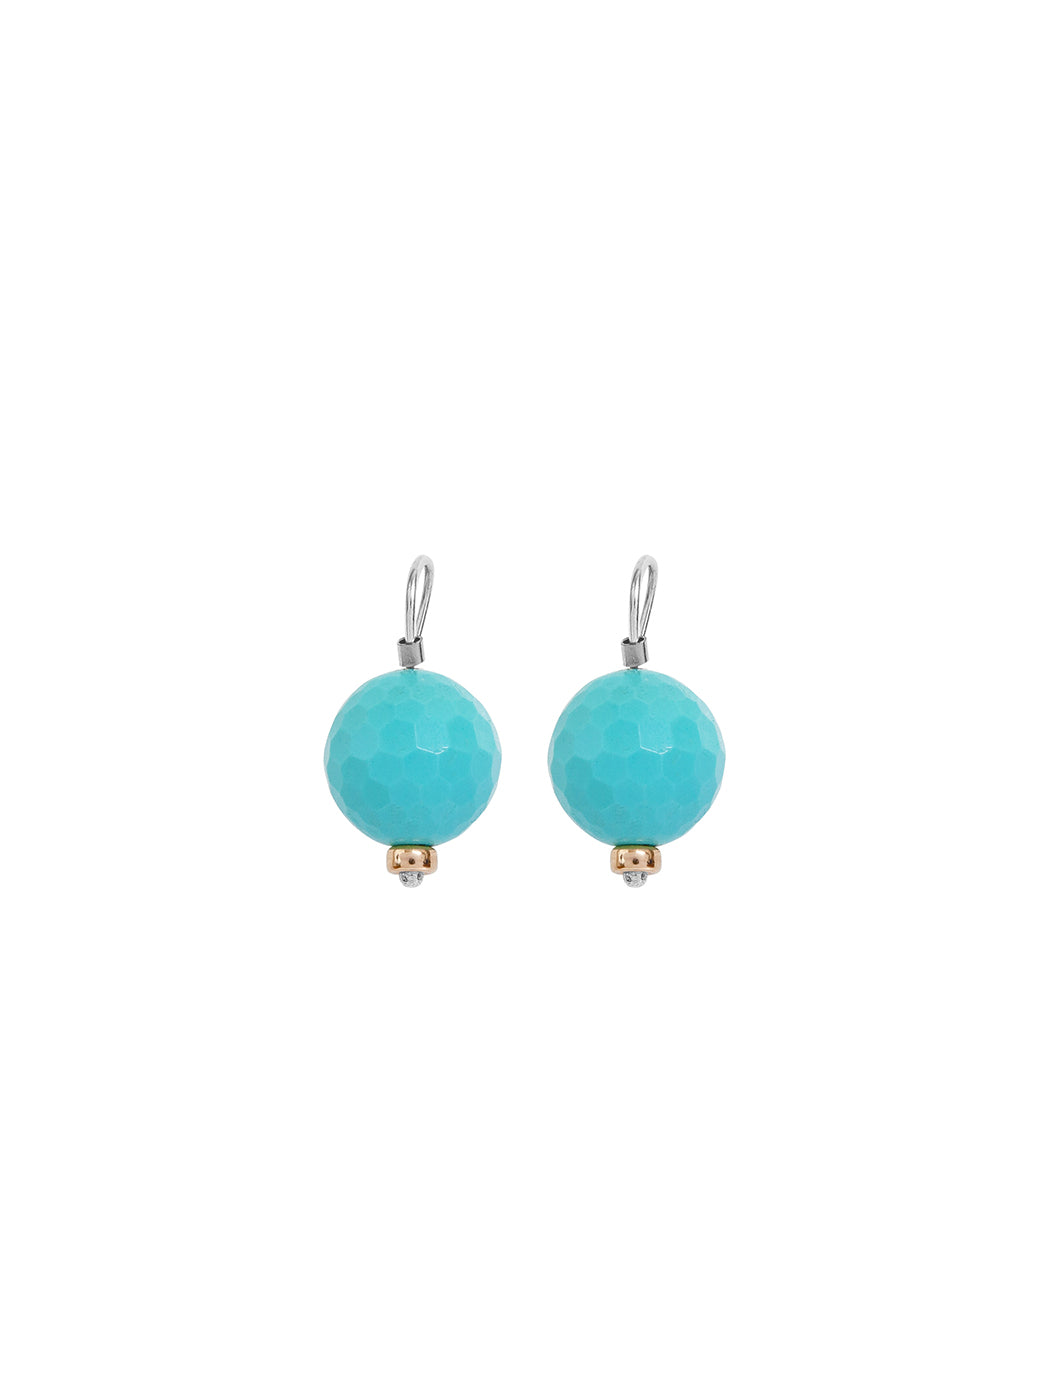 Fiorina Jewellery Ball Earrings Turquoise Gold Highlights